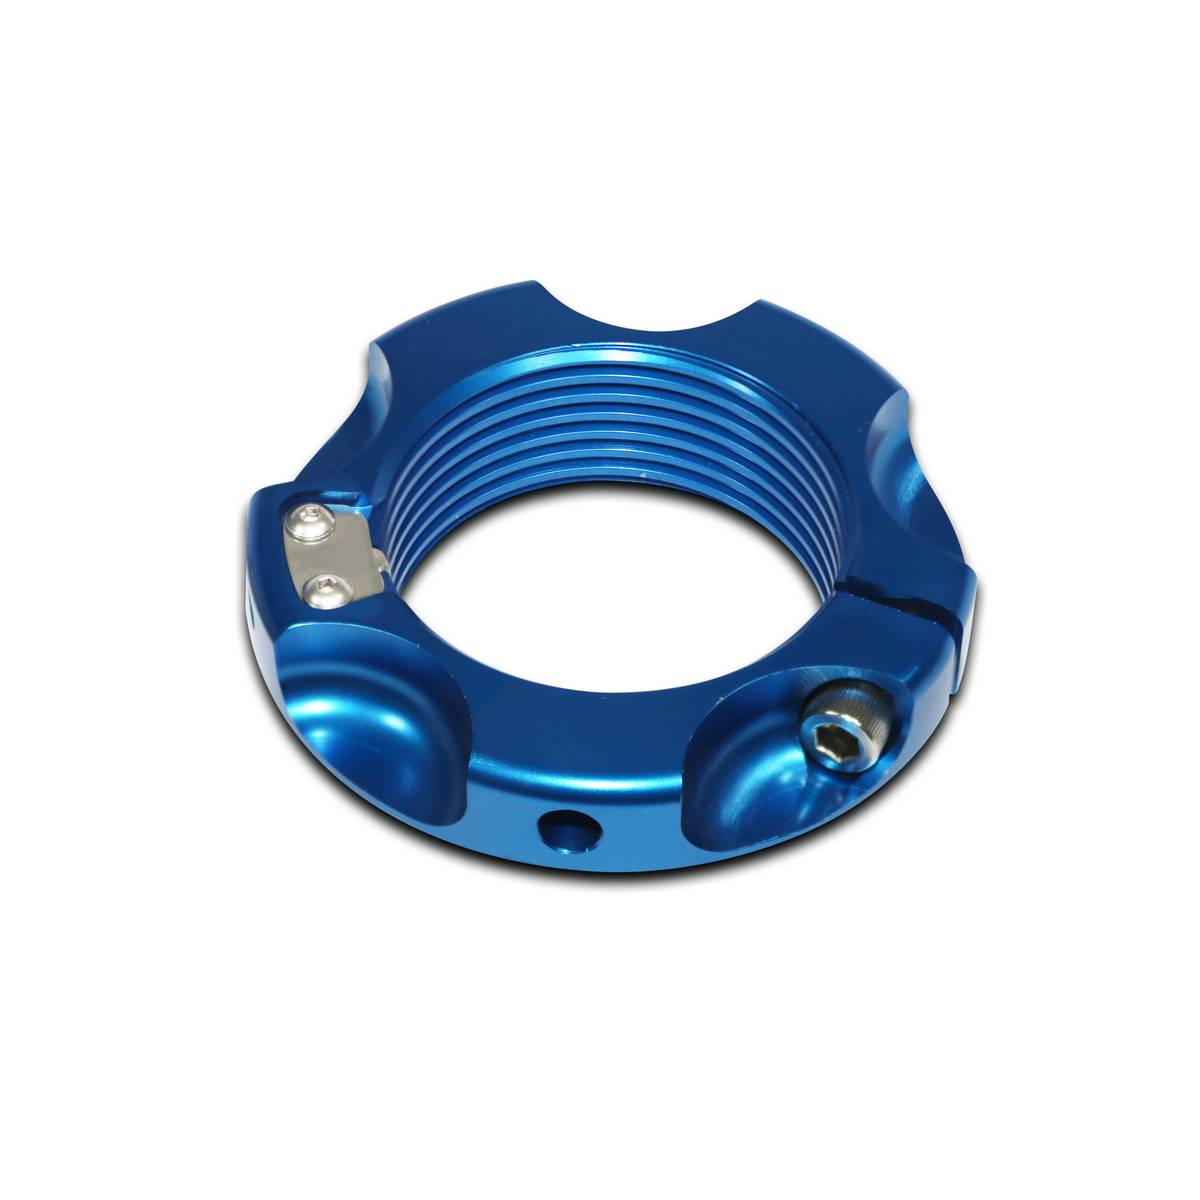 Adjuster Nut for Coil-Over Kit